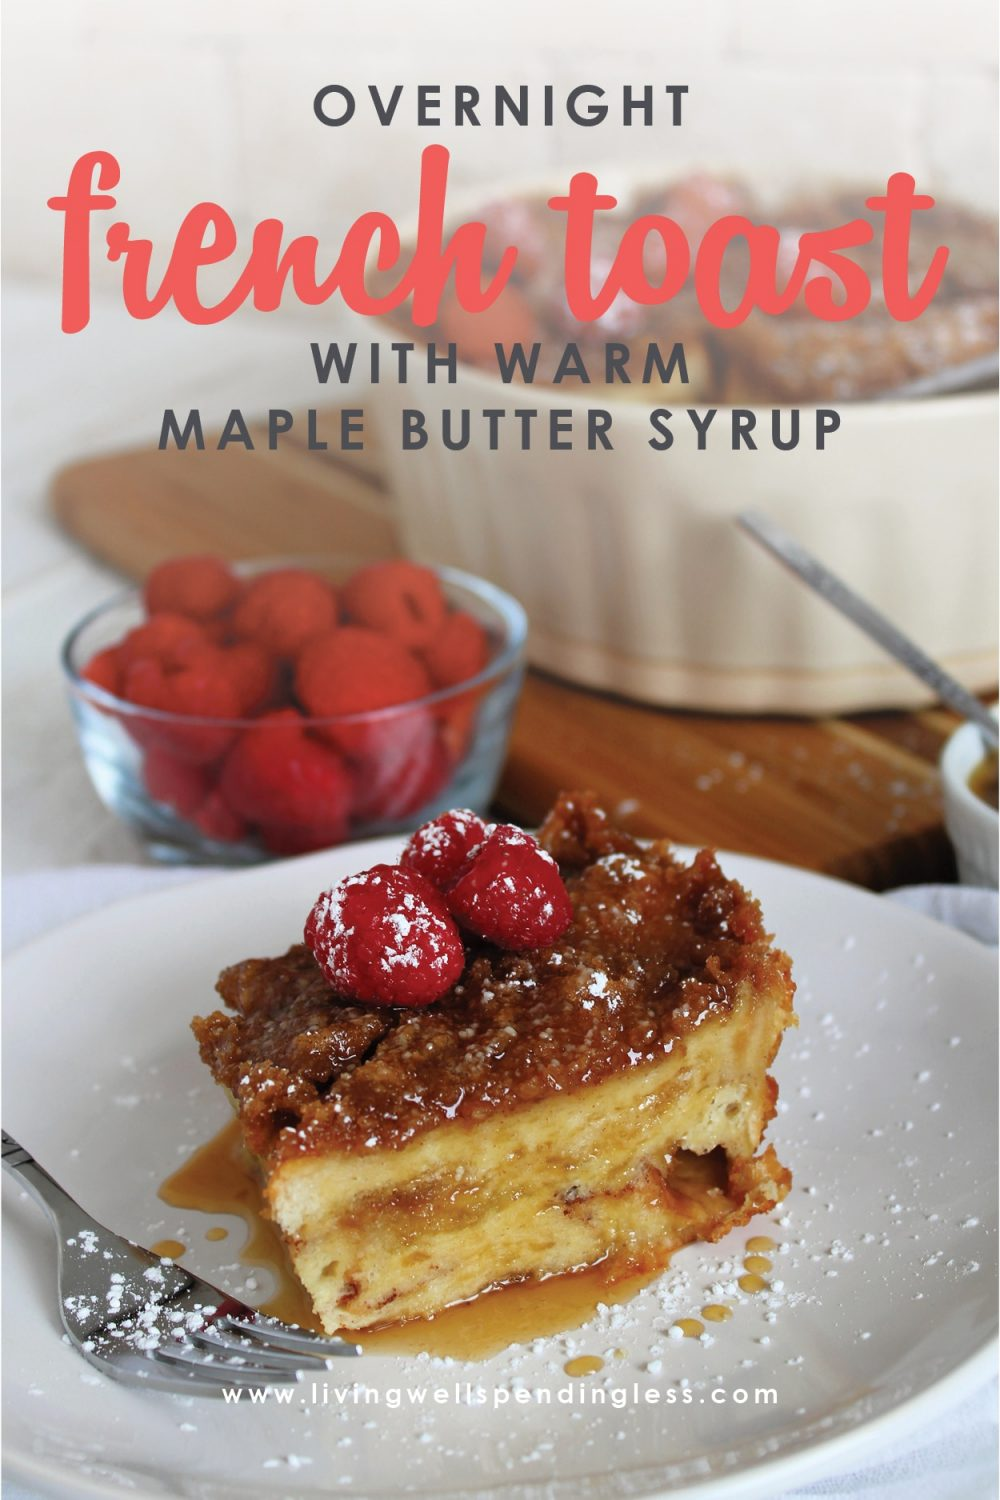 Looking for the perfect brunch fare? This super easy overnight french toast has been my go-to recipe for years, and I always get a ton of requests for the recipe! Whip it up the night before, then bake just before serving for an effortless meal that your guests will rave about! Overnight French Toast with Warm Maple Butter Syrup | Easy Overnight French Toast | Overnight French Toast Recipe | Warm Maple Butter Syrup Recipe